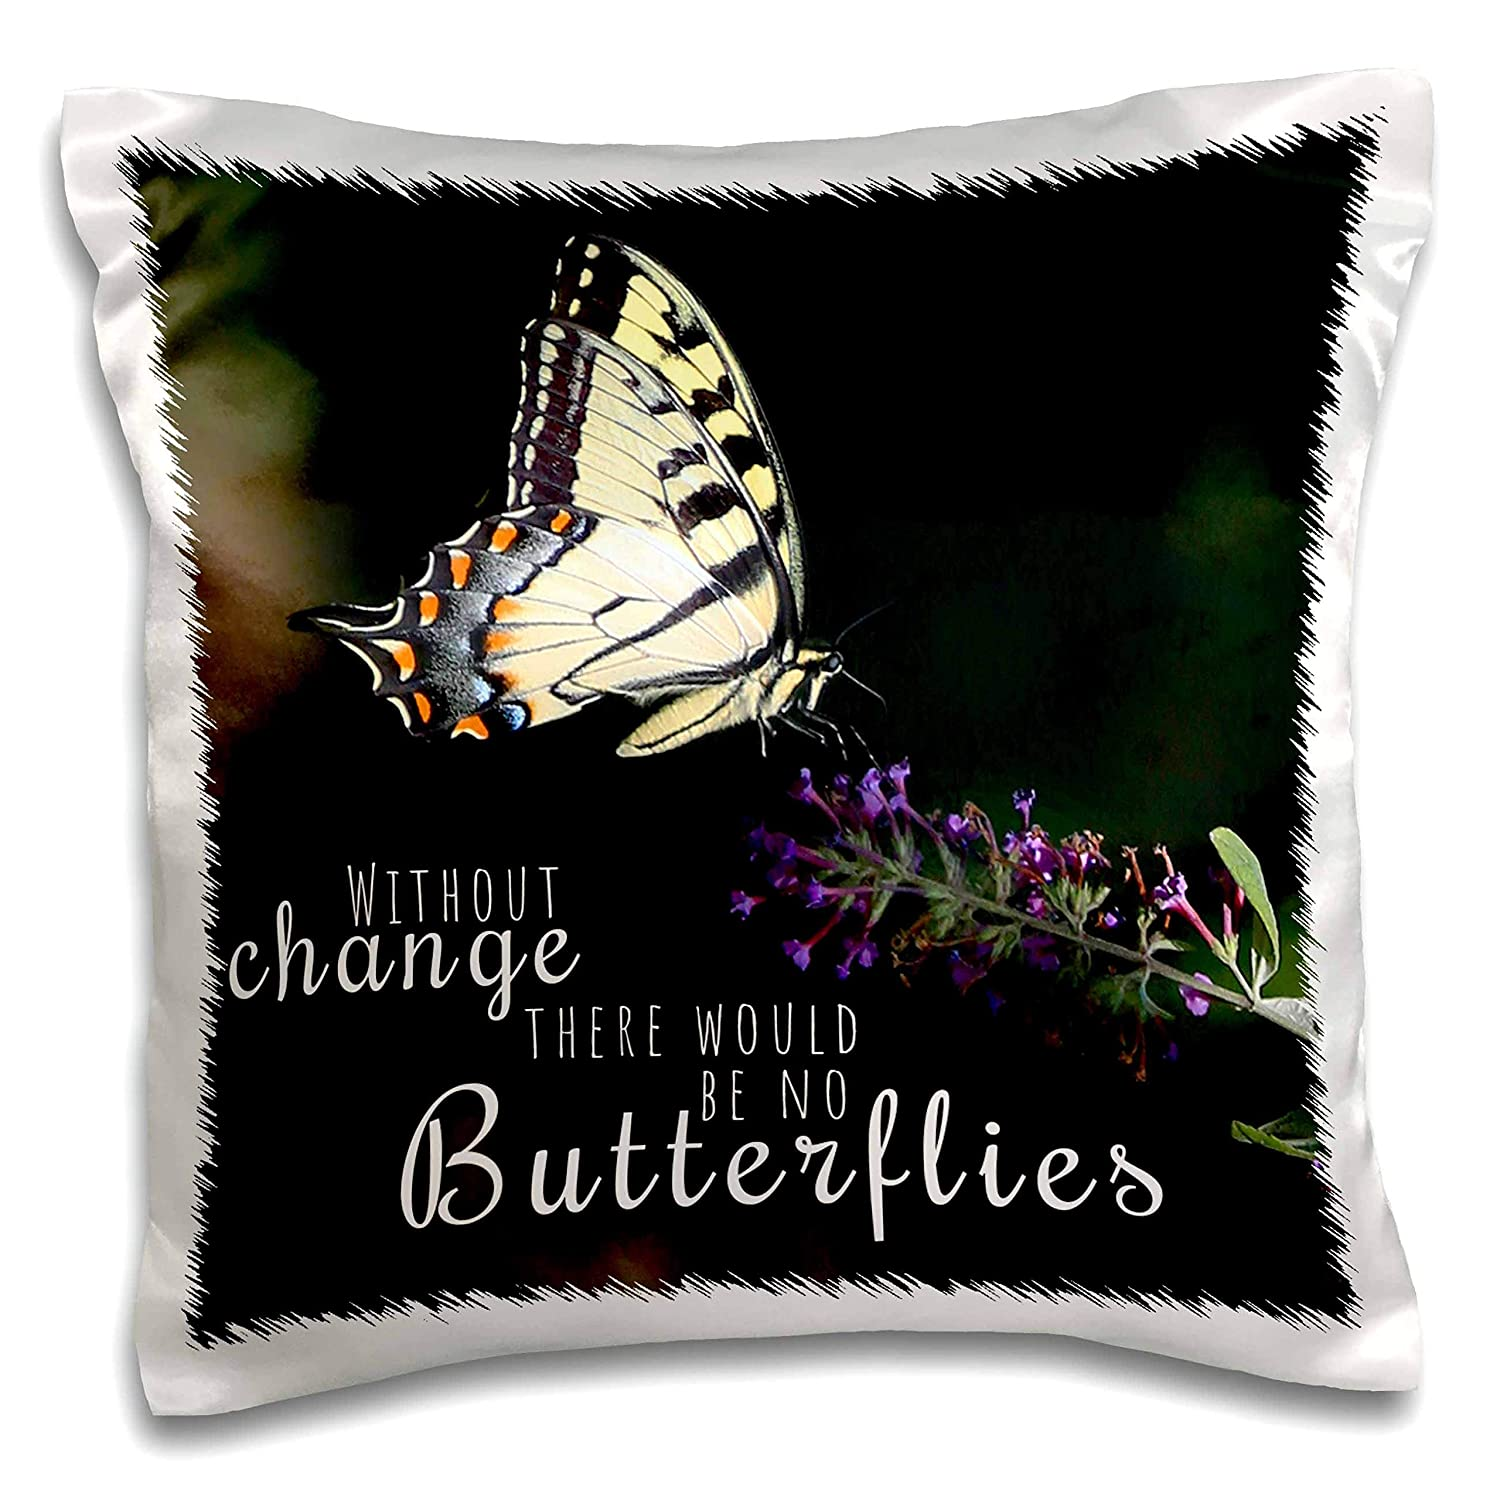 3dRose Stamp City - Typography - Pollinating Swallowtail. Without Change There Would be no Butterflies. - 16x16 inch Pillow Case (pc_301391_1)